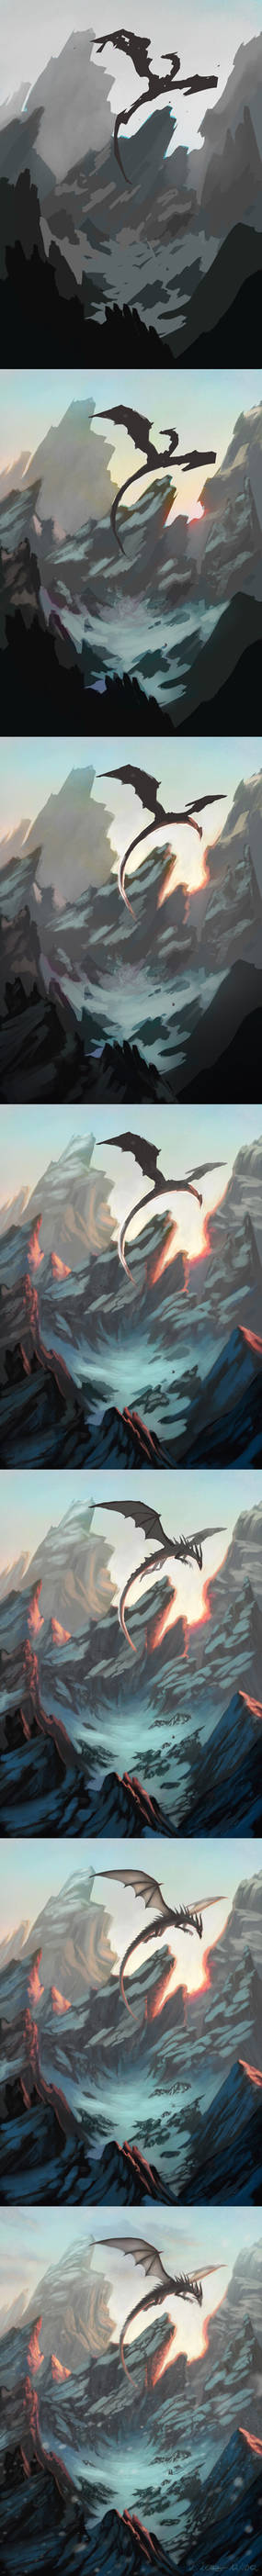 Steps: Dragon and Mountains